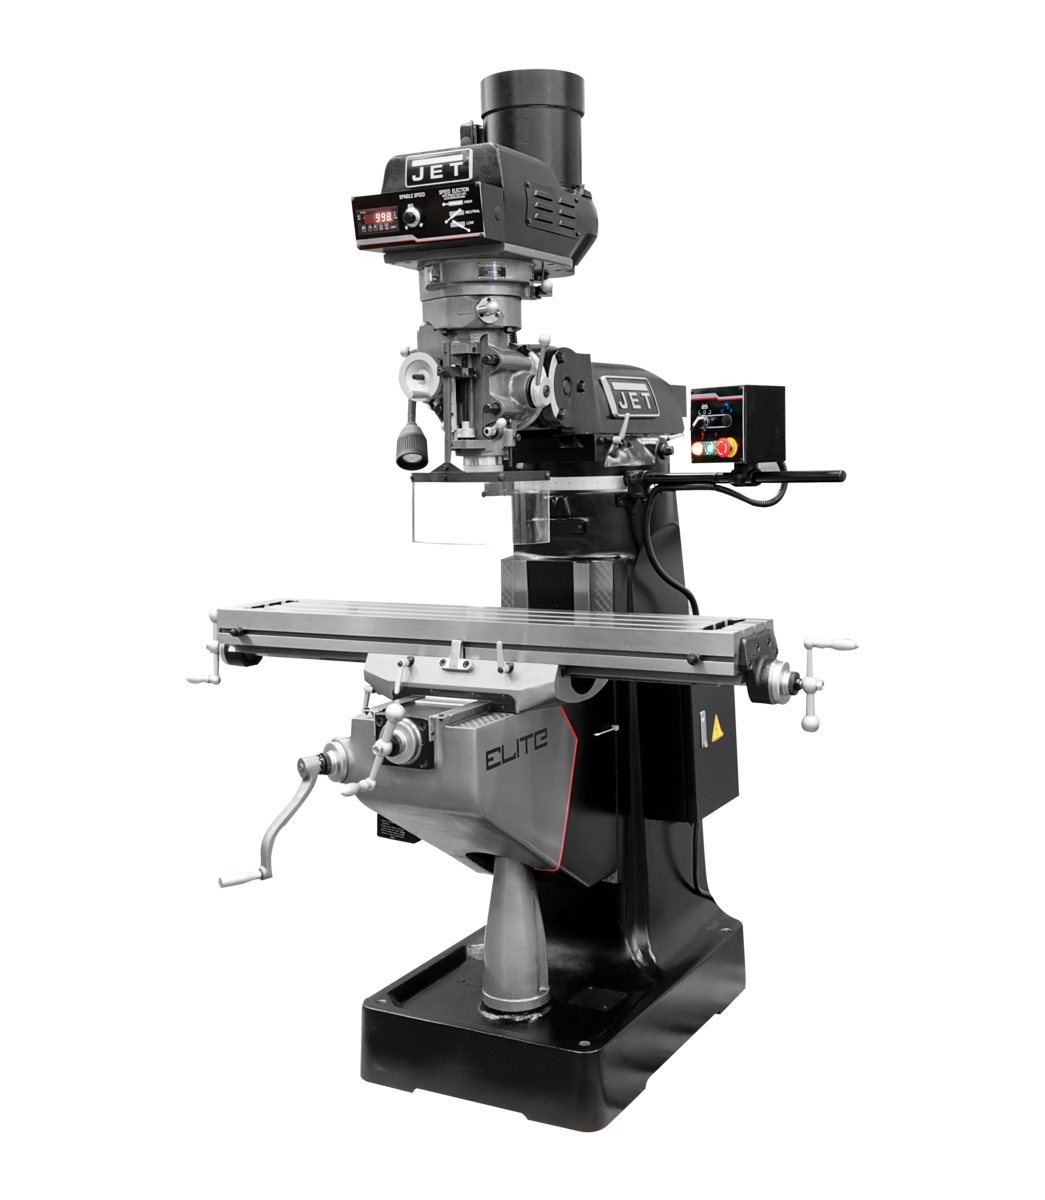 EVS-949 Mill with 3-Axis Newall DP700 (Knee) DRO and Servo X, Y-Axis Powerfeeds